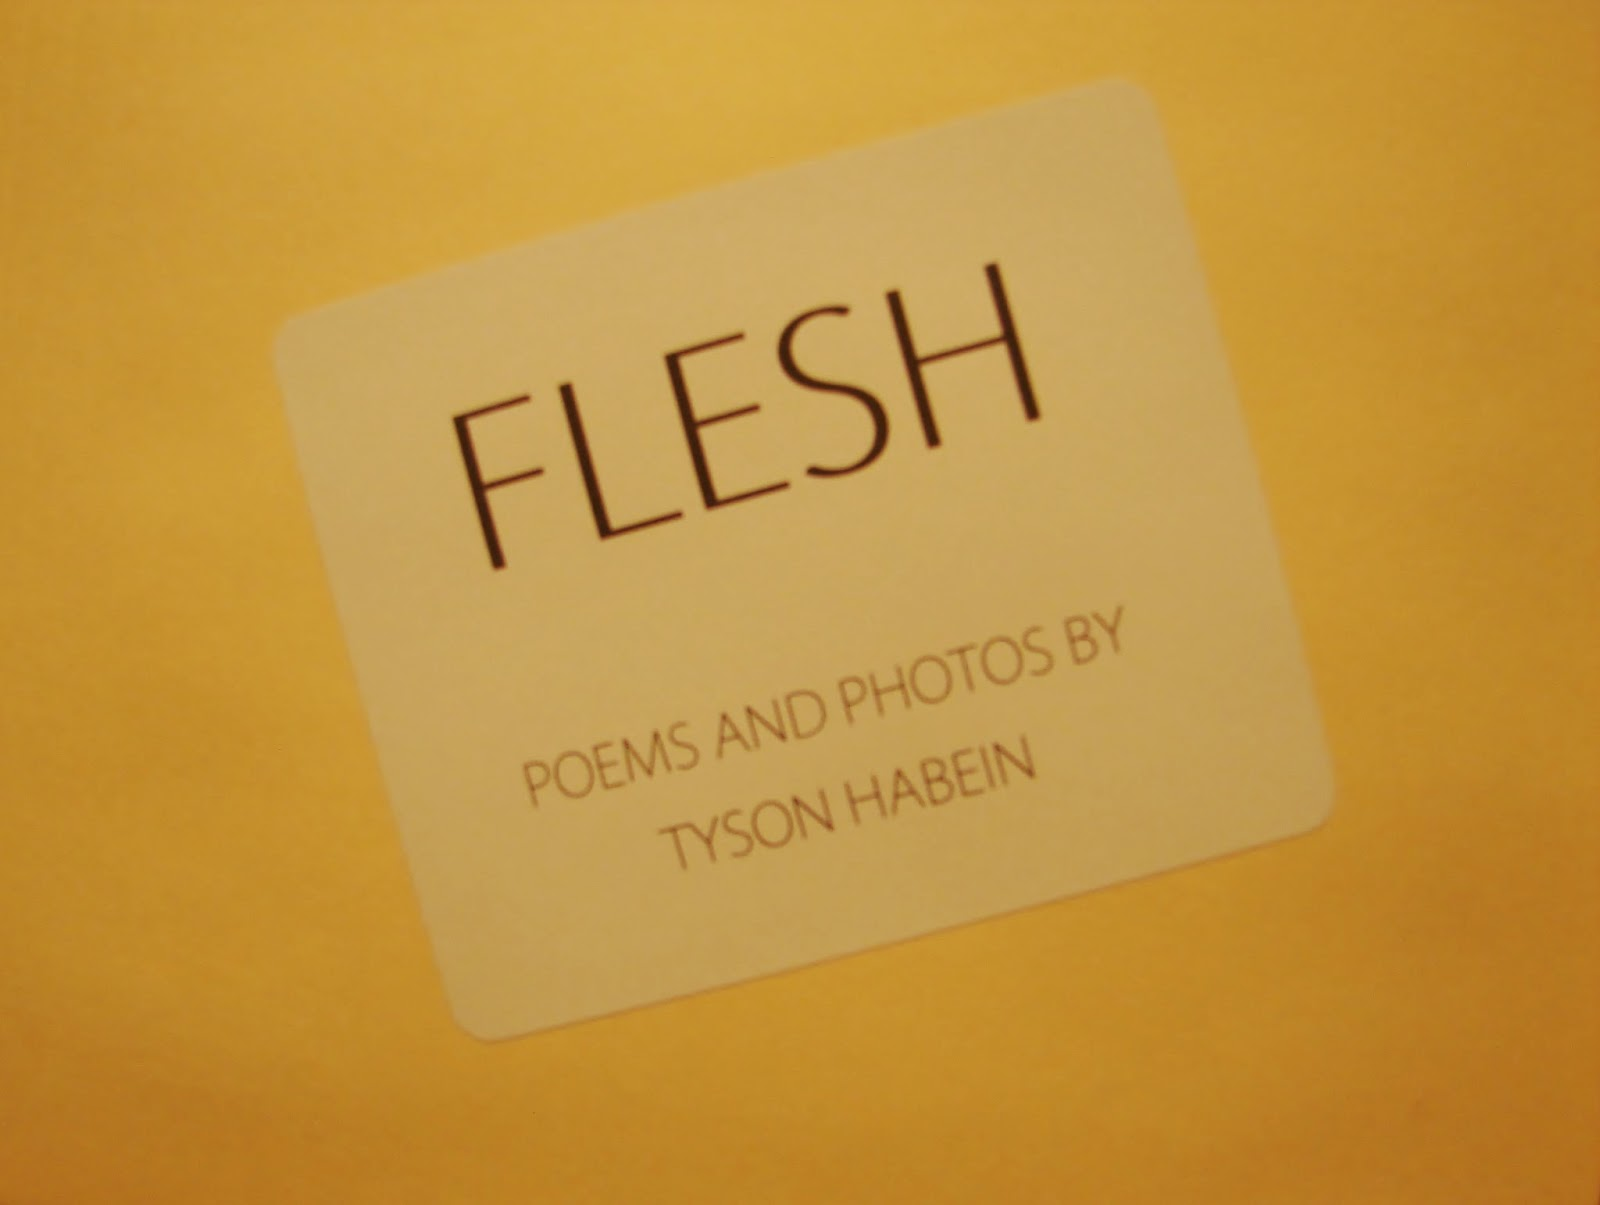 Flesh: Poems and Photos by Tyson Habein (cover)